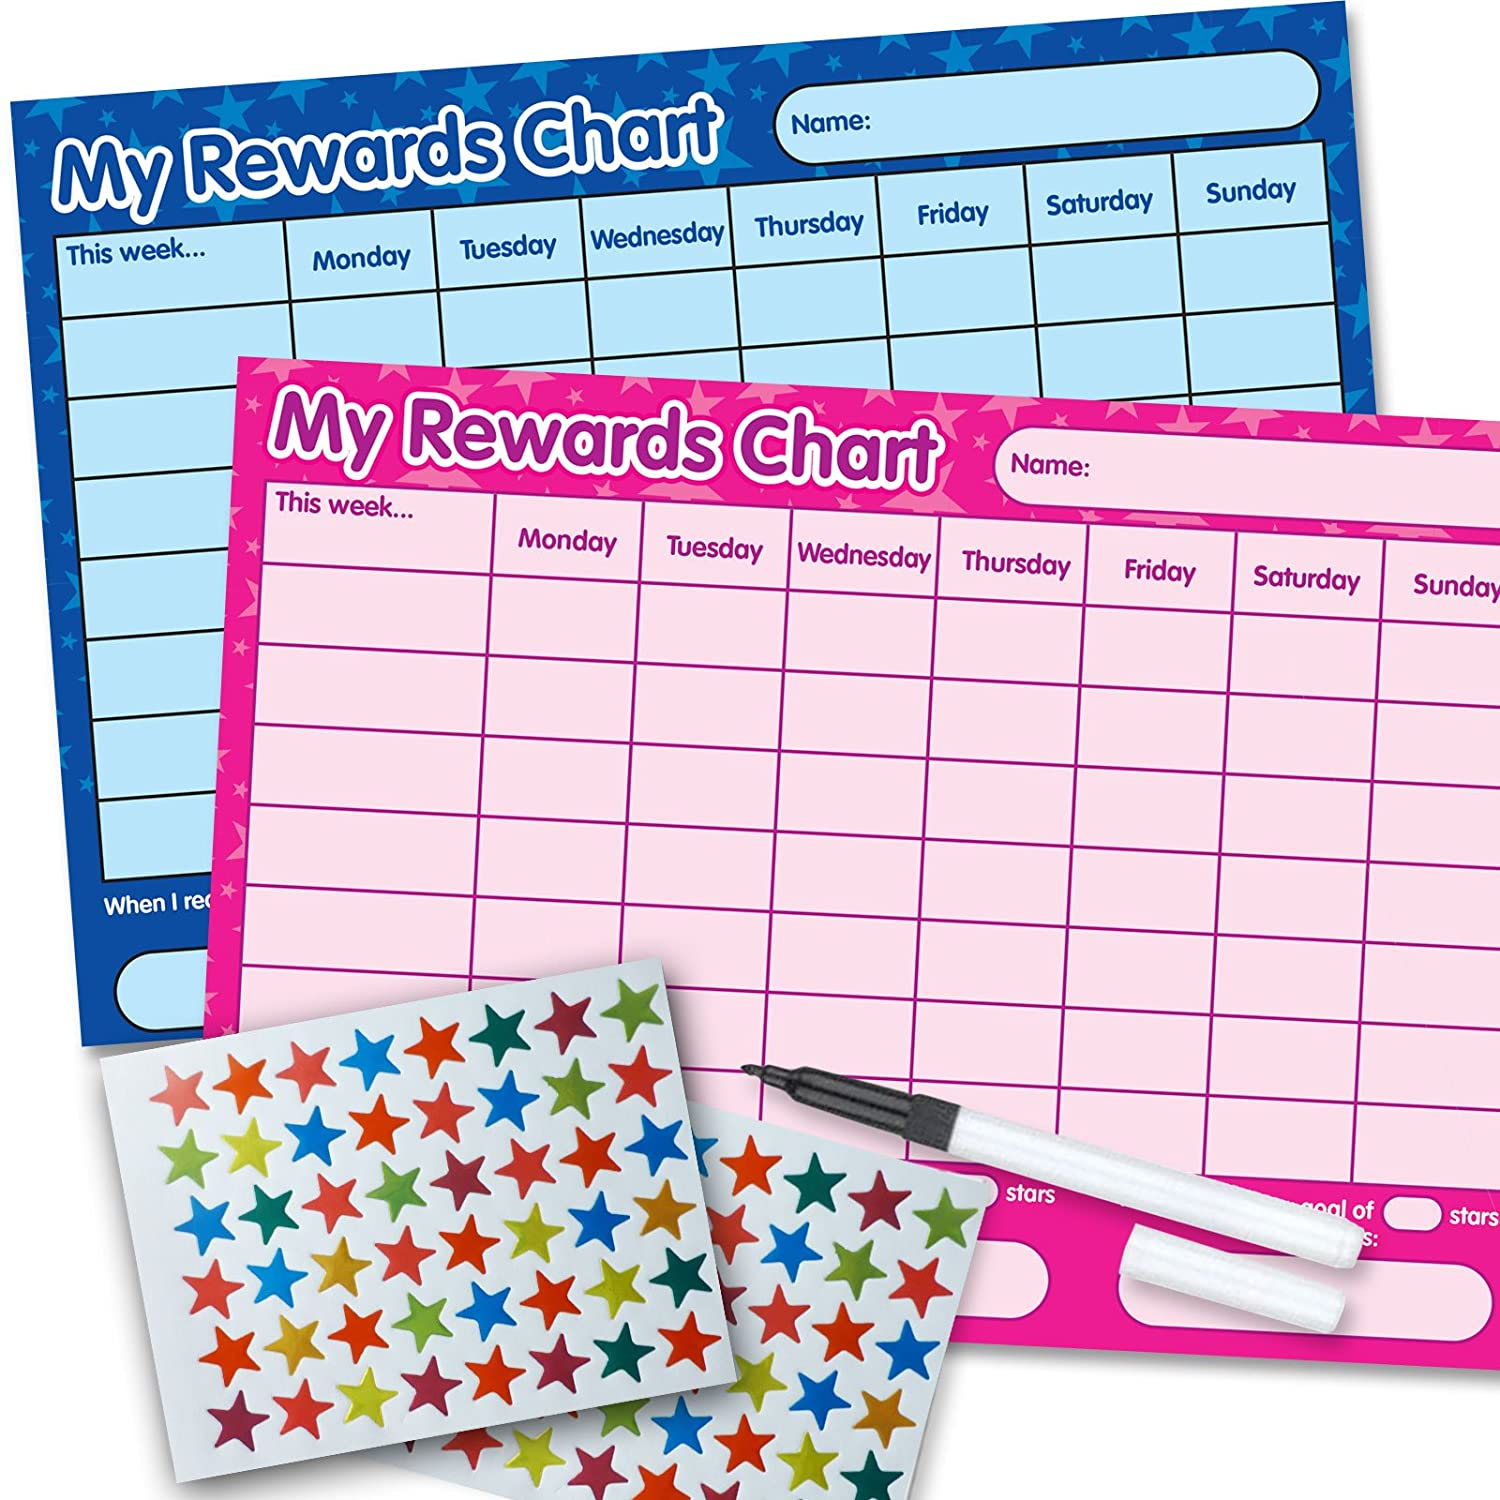 2 x Re-usable Reward Chart, (including FREE Star Stickers and Pen) - Blue & Pink Funky Monkey House